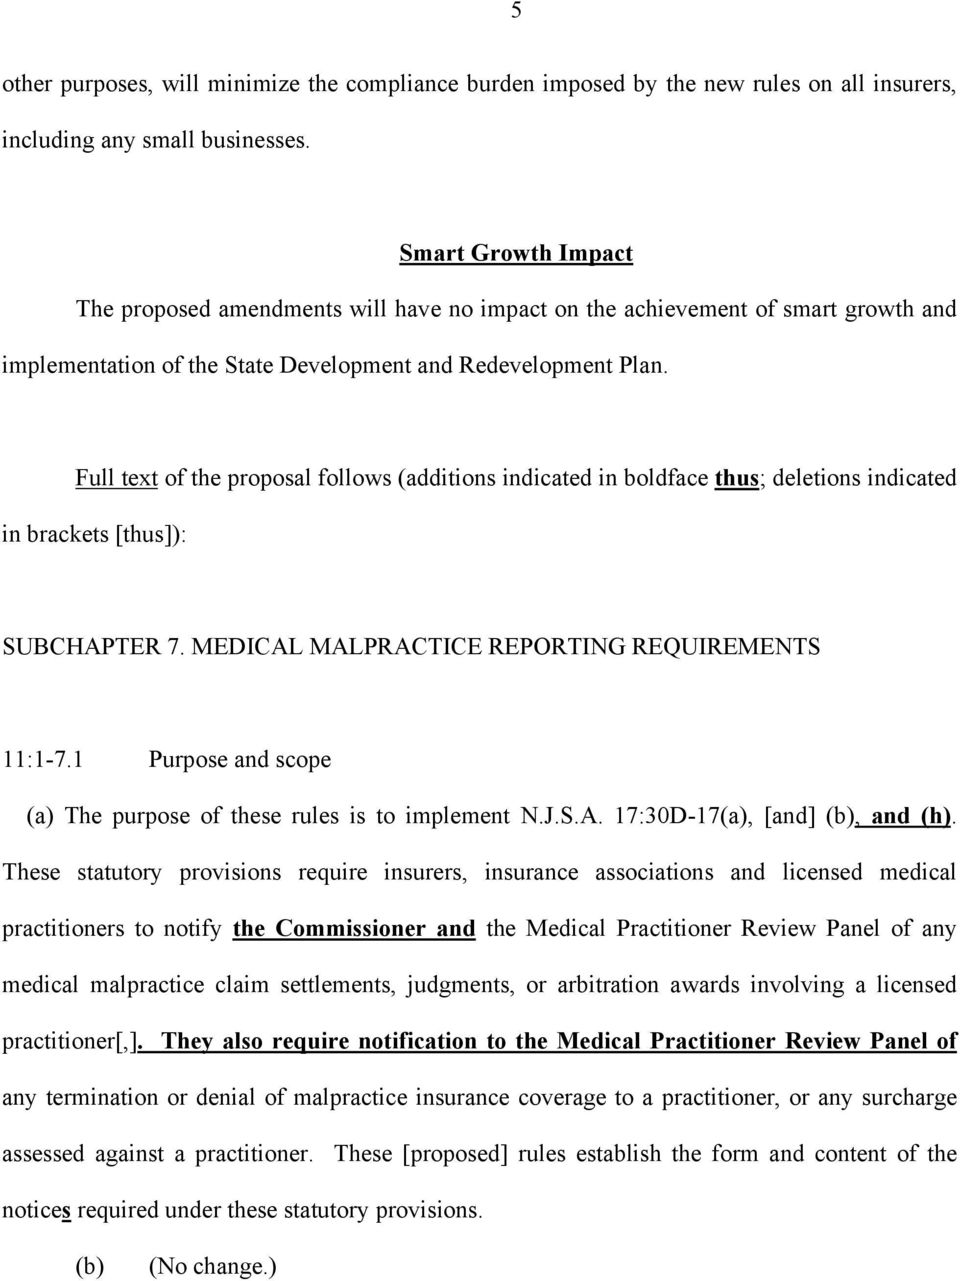 Full text of the proposal follows (additions indicated in boldface thus; deletions indicated in brackets [thus]): SUBCHAPTER 7. MEDICAL MALPRACTICE REPORTING REQUIREMENTS 11:1-7.